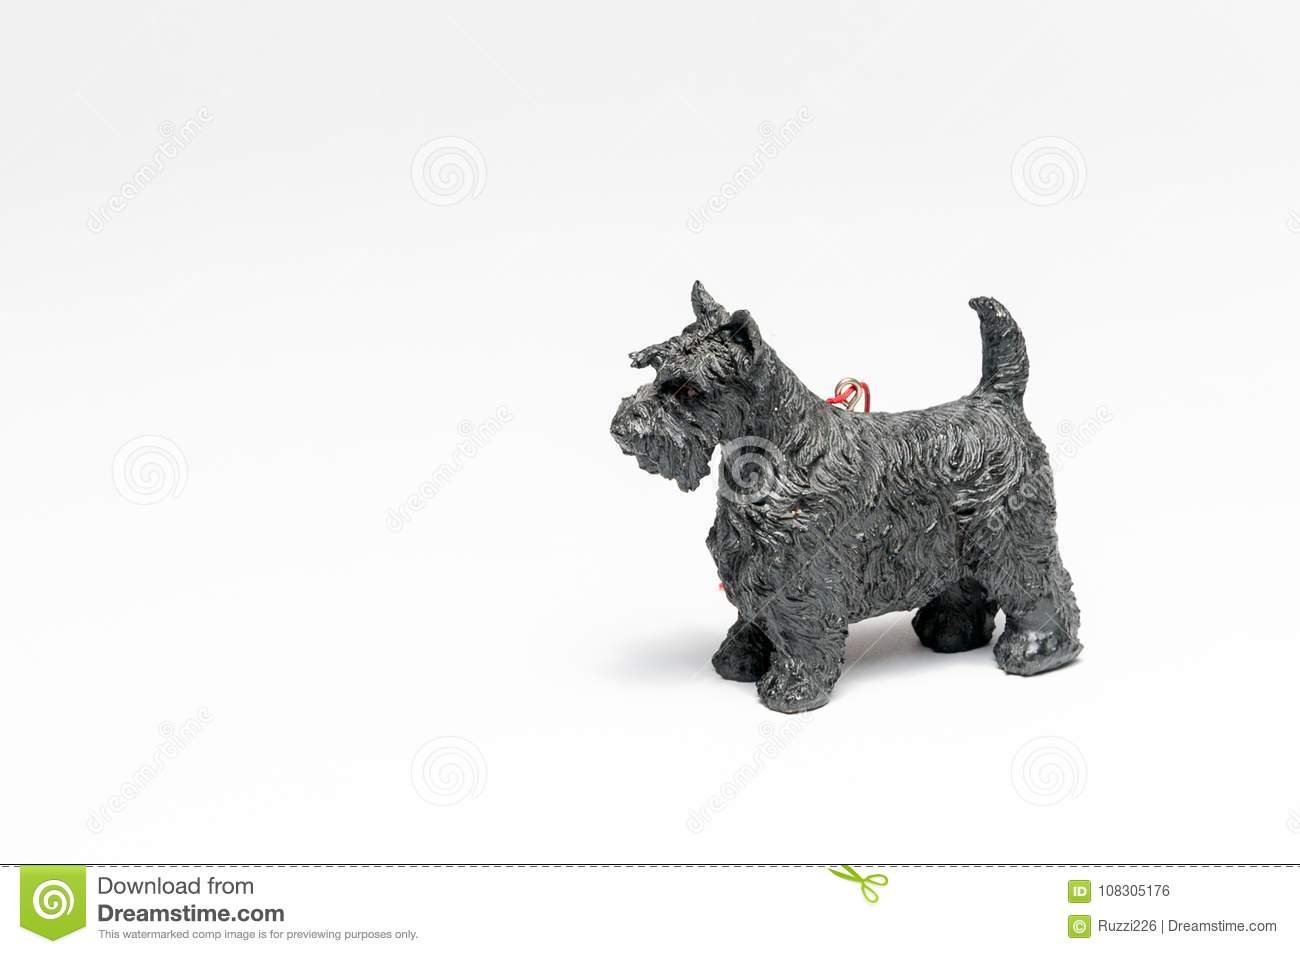 Mineature Black Schnauser Christmas Tree Ornament Stock Photo